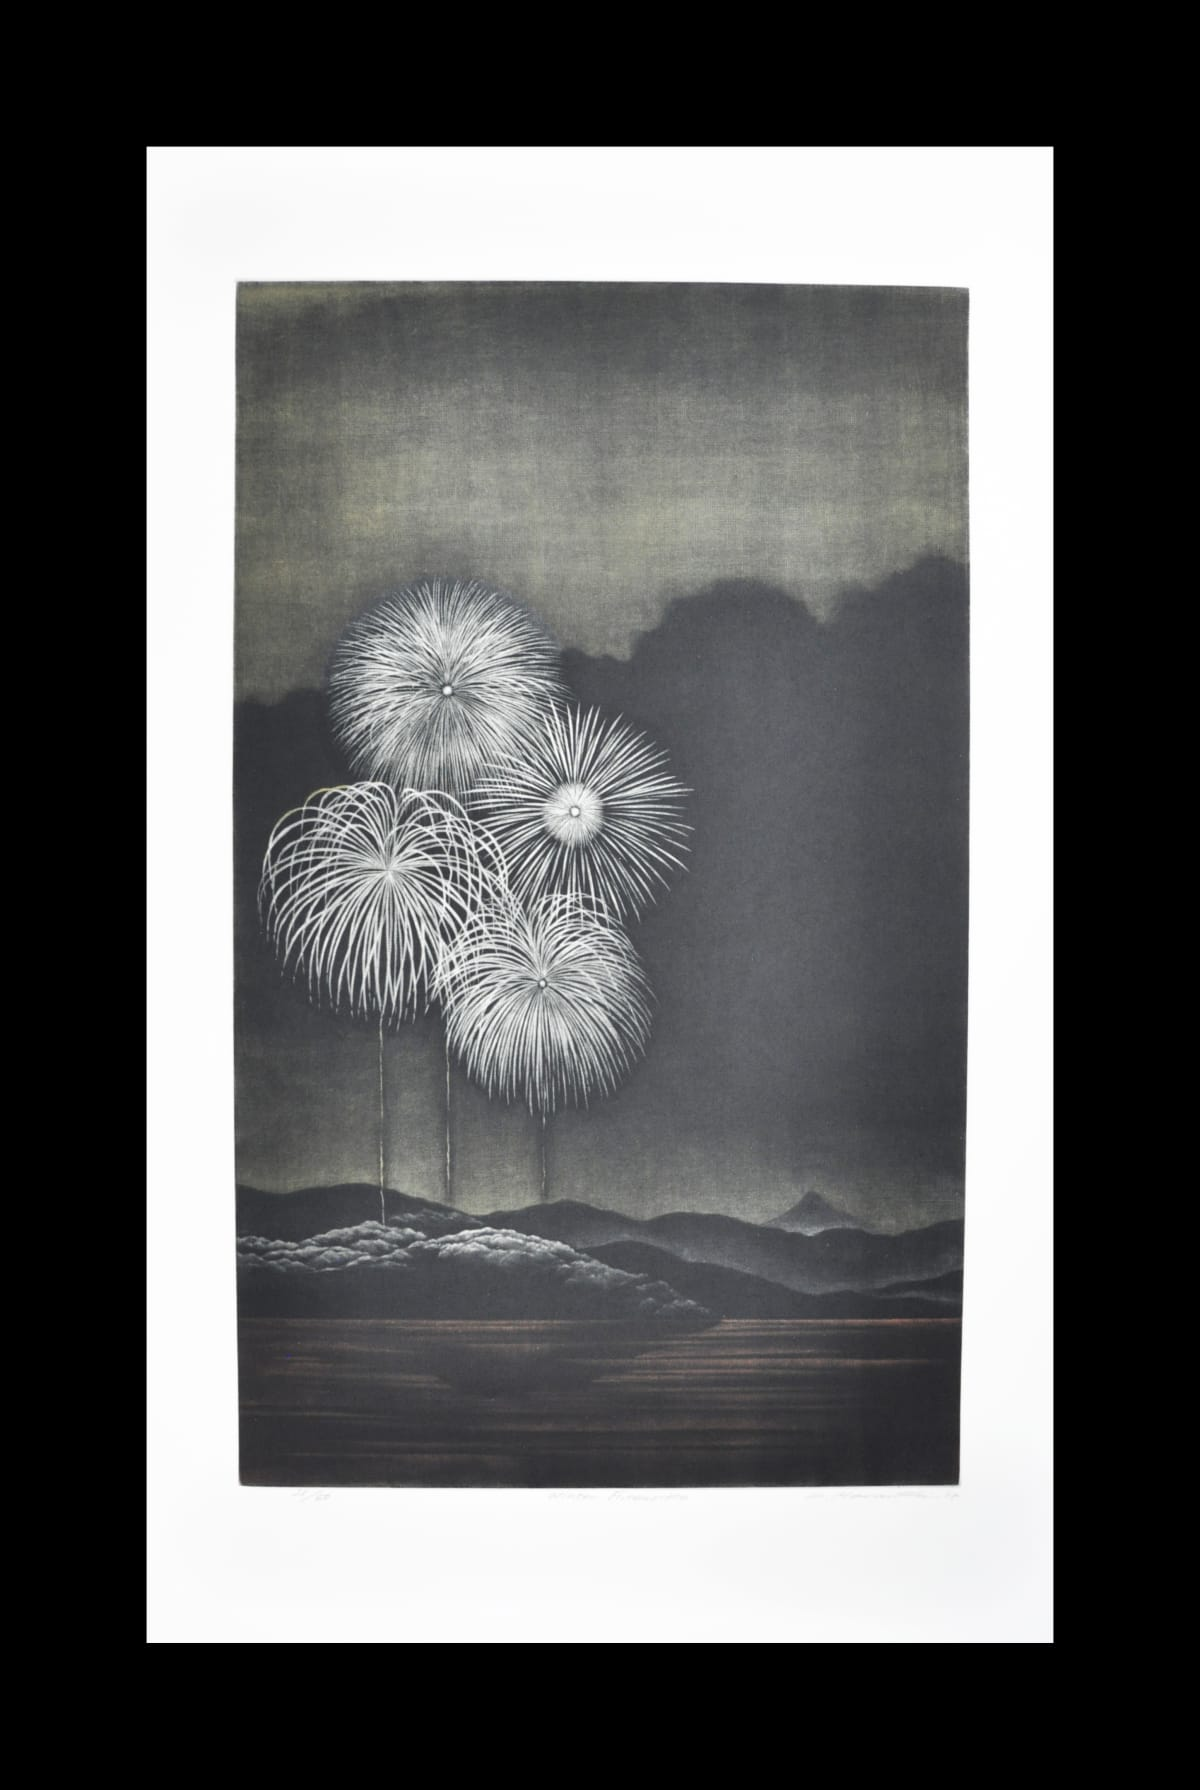 Katsunori Hamanishi Winter Fireworks, 2019 Mezzotint 60 x 36 cm image size Edition of 50